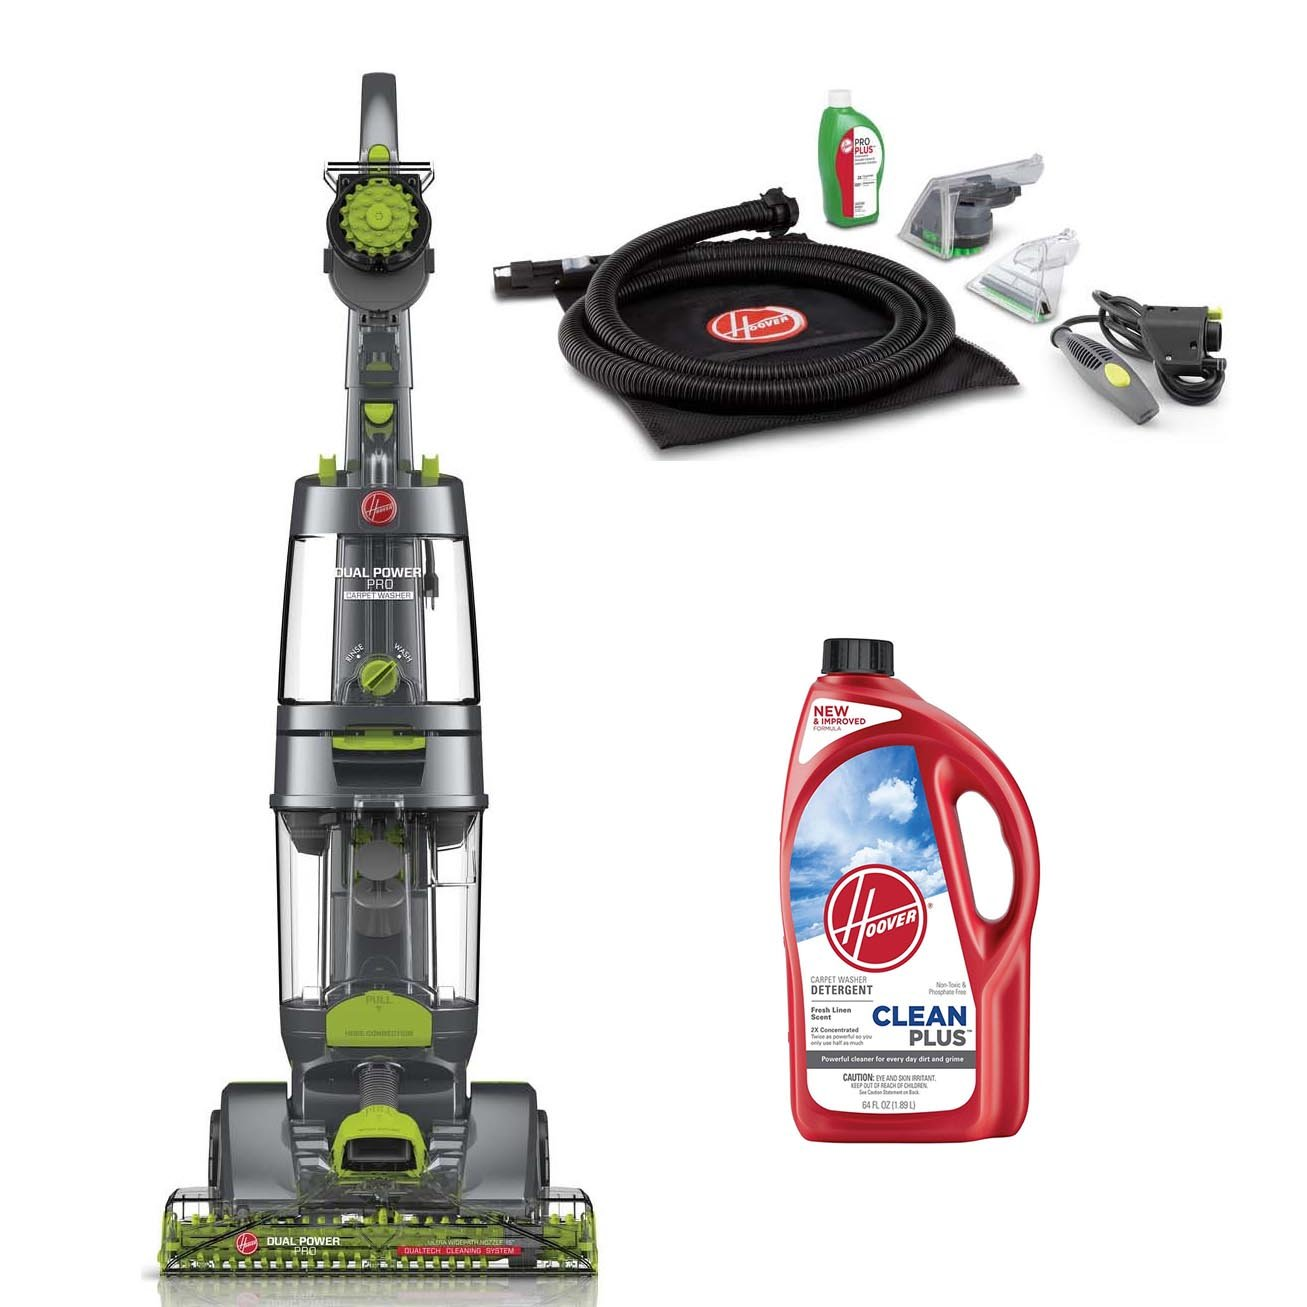 Hoover Dual Power Pro Carpet Cleaner w/Accessory Pack & Clean Plus 2x Solution